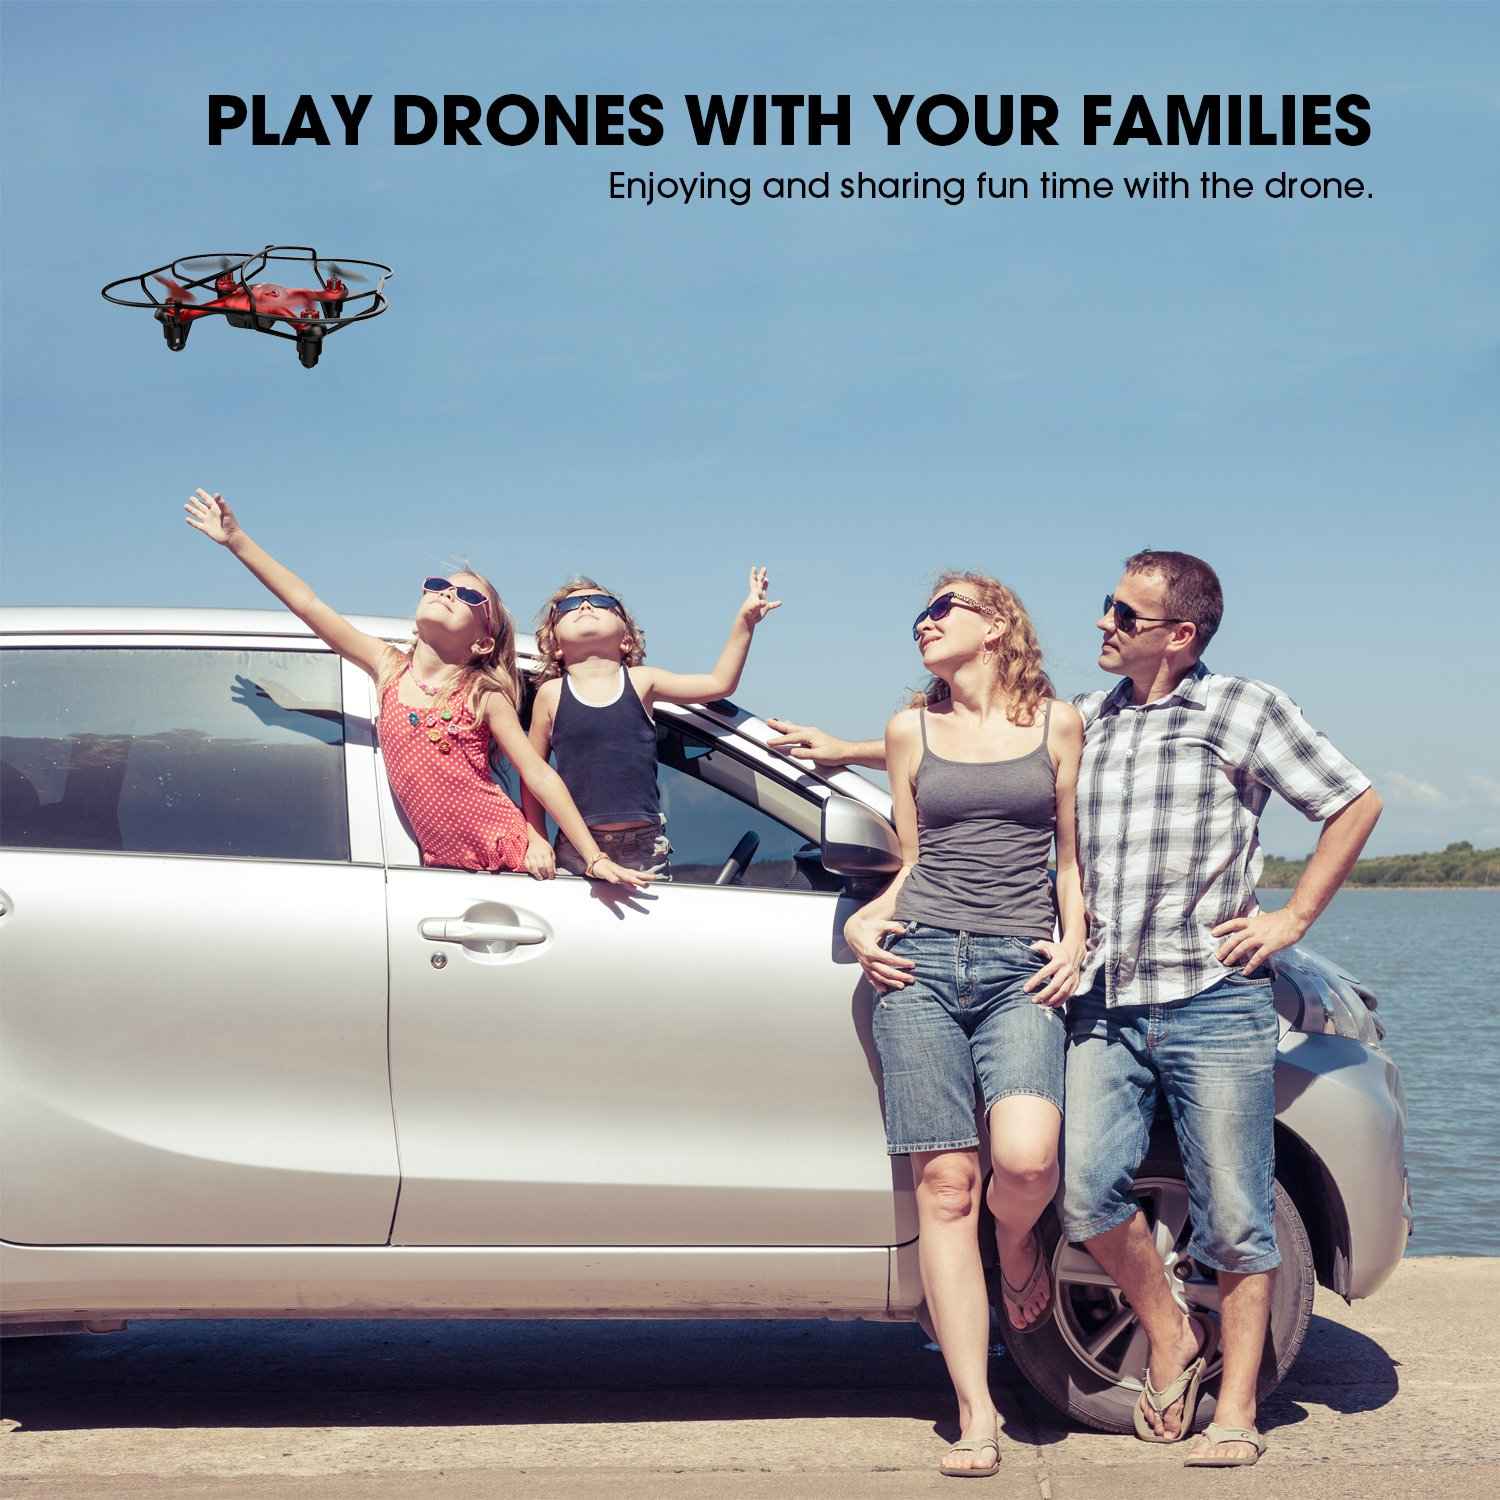 TEC.BEAN Mini Drone for Beginners Hovering Quadcopter with Altitude Hold Mode One Key Take Off Landing Return Home Entry Level for Kids by TEC.BEAN (Image #8)